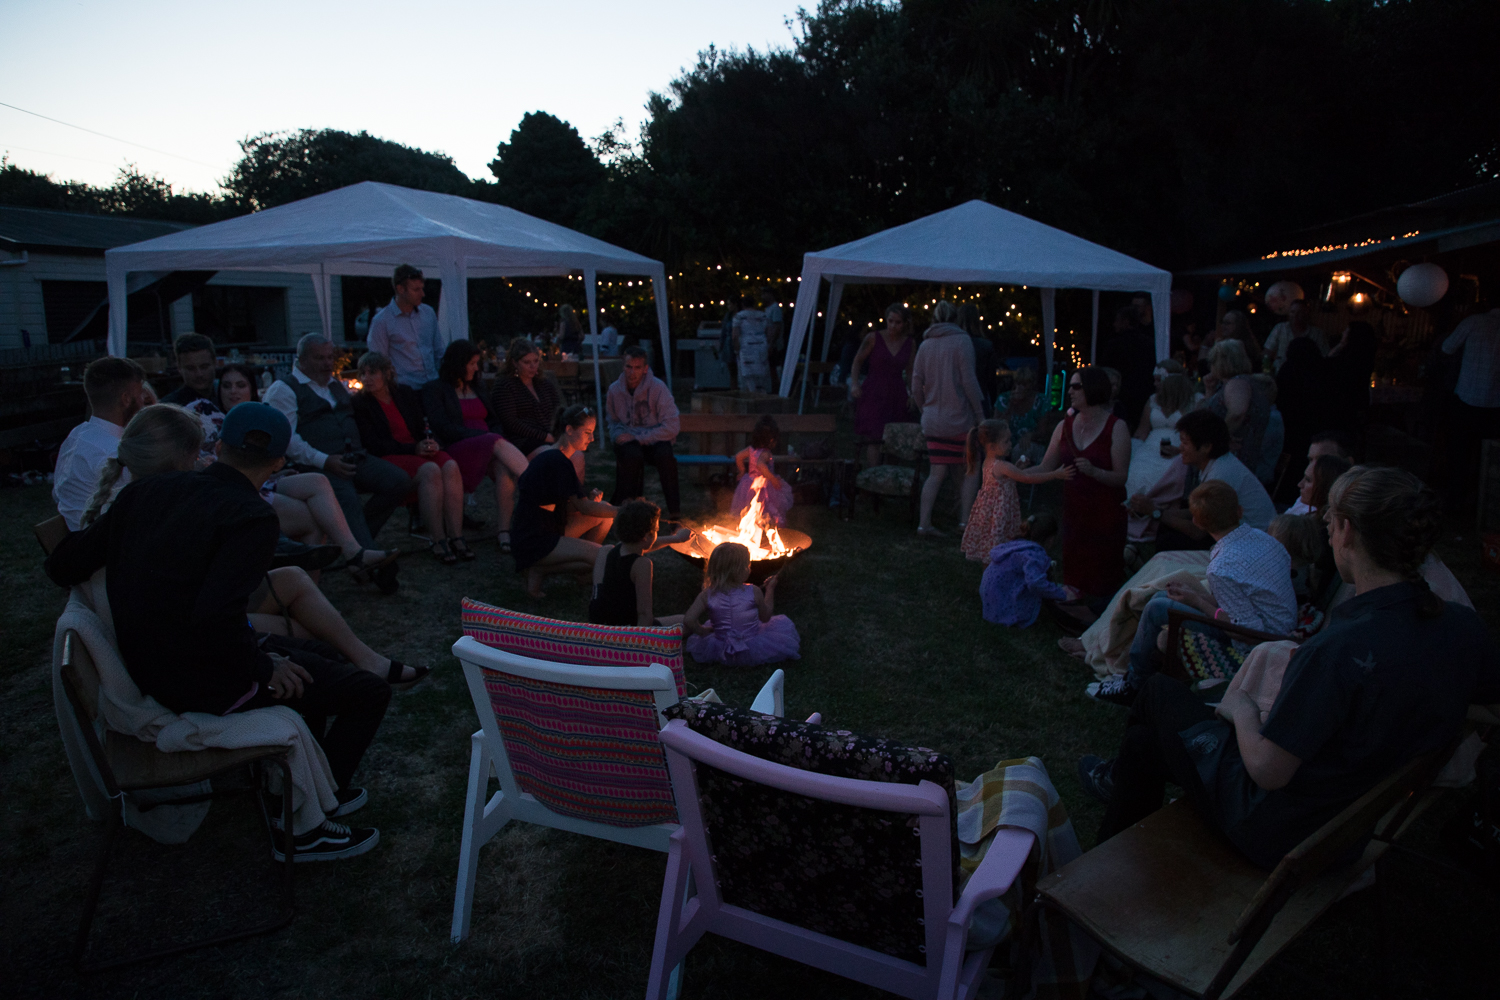 wedding-photography-guests-sitting-around-the-fire-pit.jpg